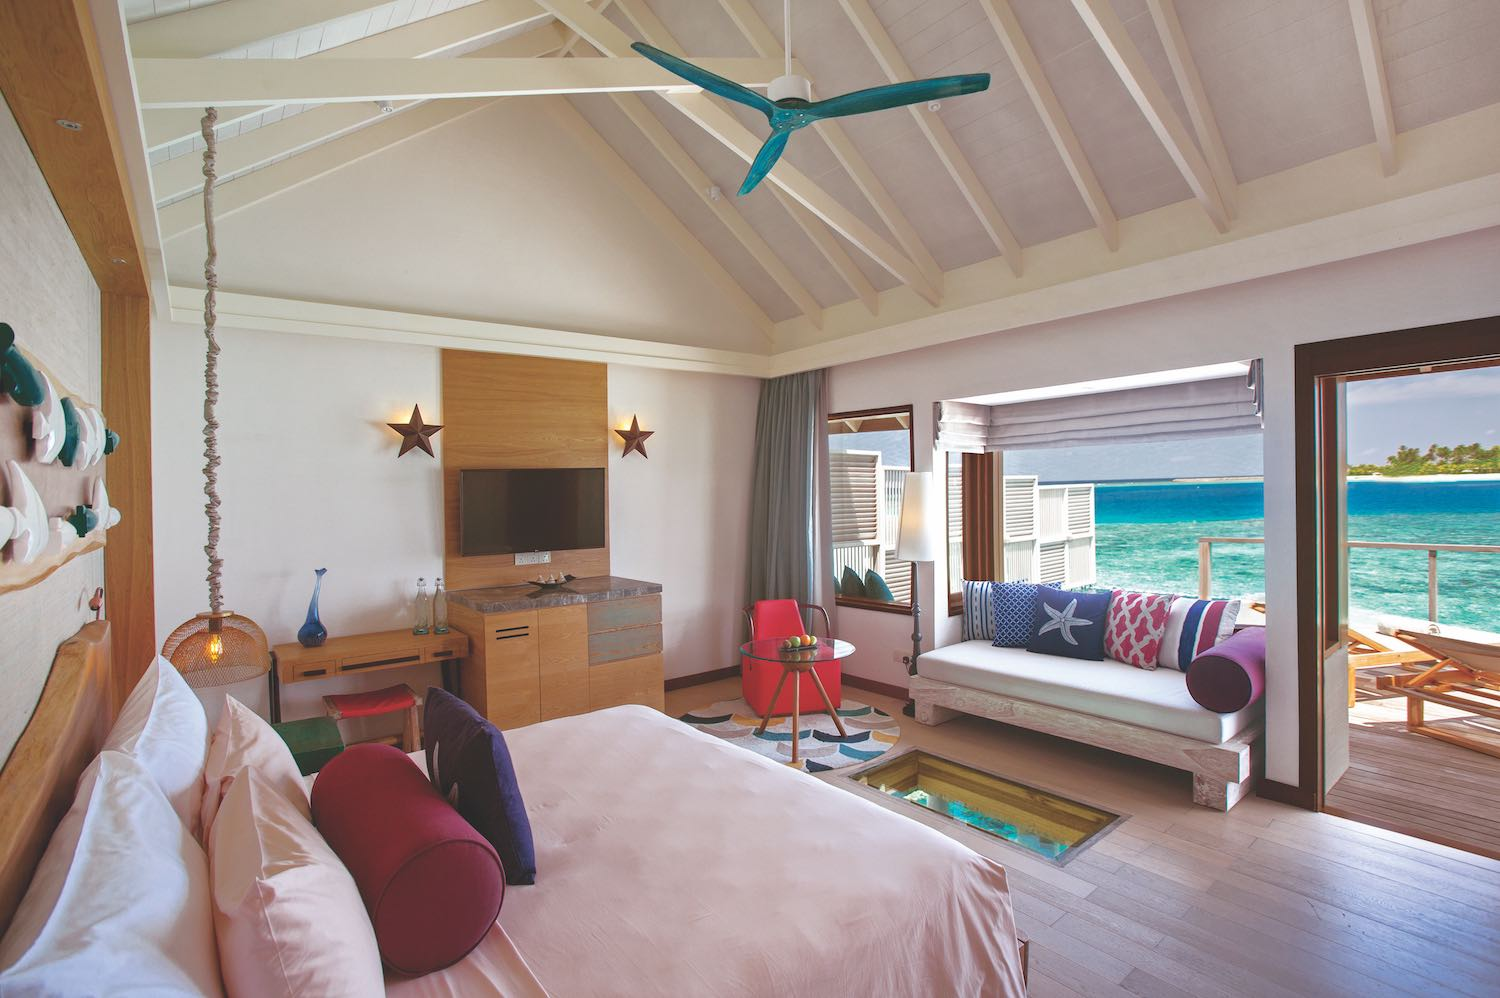 maldives-oblu-select-at-sangeli-deluxe-water-villa-with-pool-holiday-honeymoon-vacation-invite-to-paradise.jpg